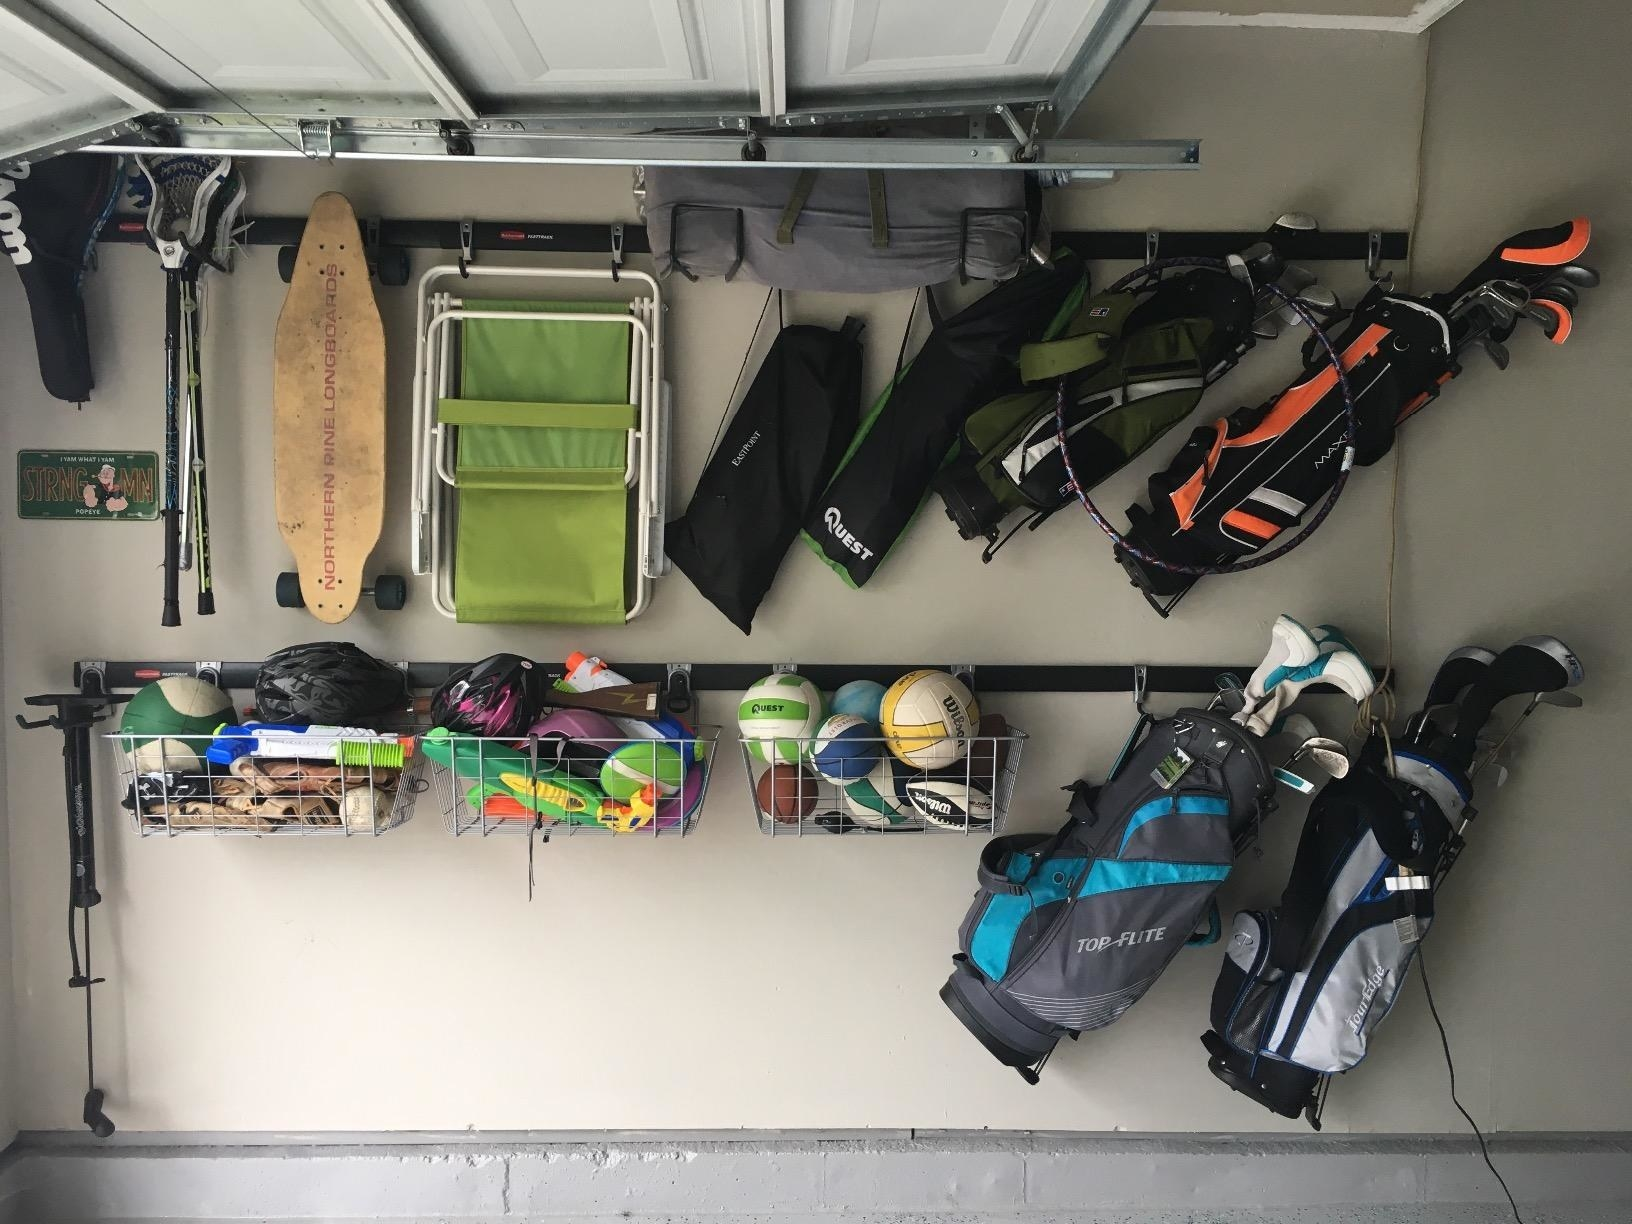 reviewer photo showing their garage completely organized with everything on their wall hanging from the track rails, including beach chairs, golf clubs, kids' toys, etc.